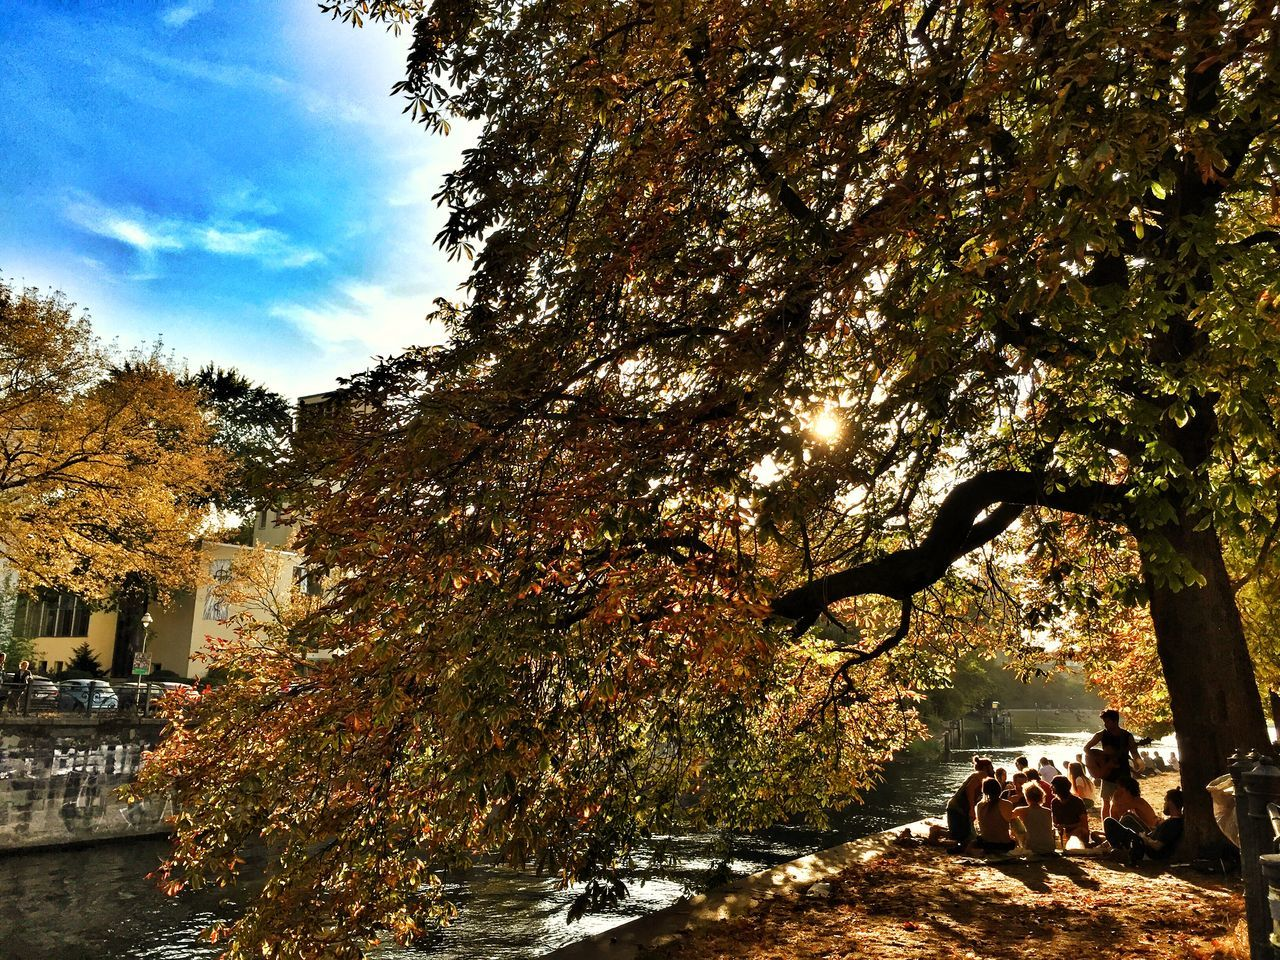 tree, nature, autumn, growth, outdoors, day, tranquility, beauty in nature, branch, scenics, sky, no people, water, architecture